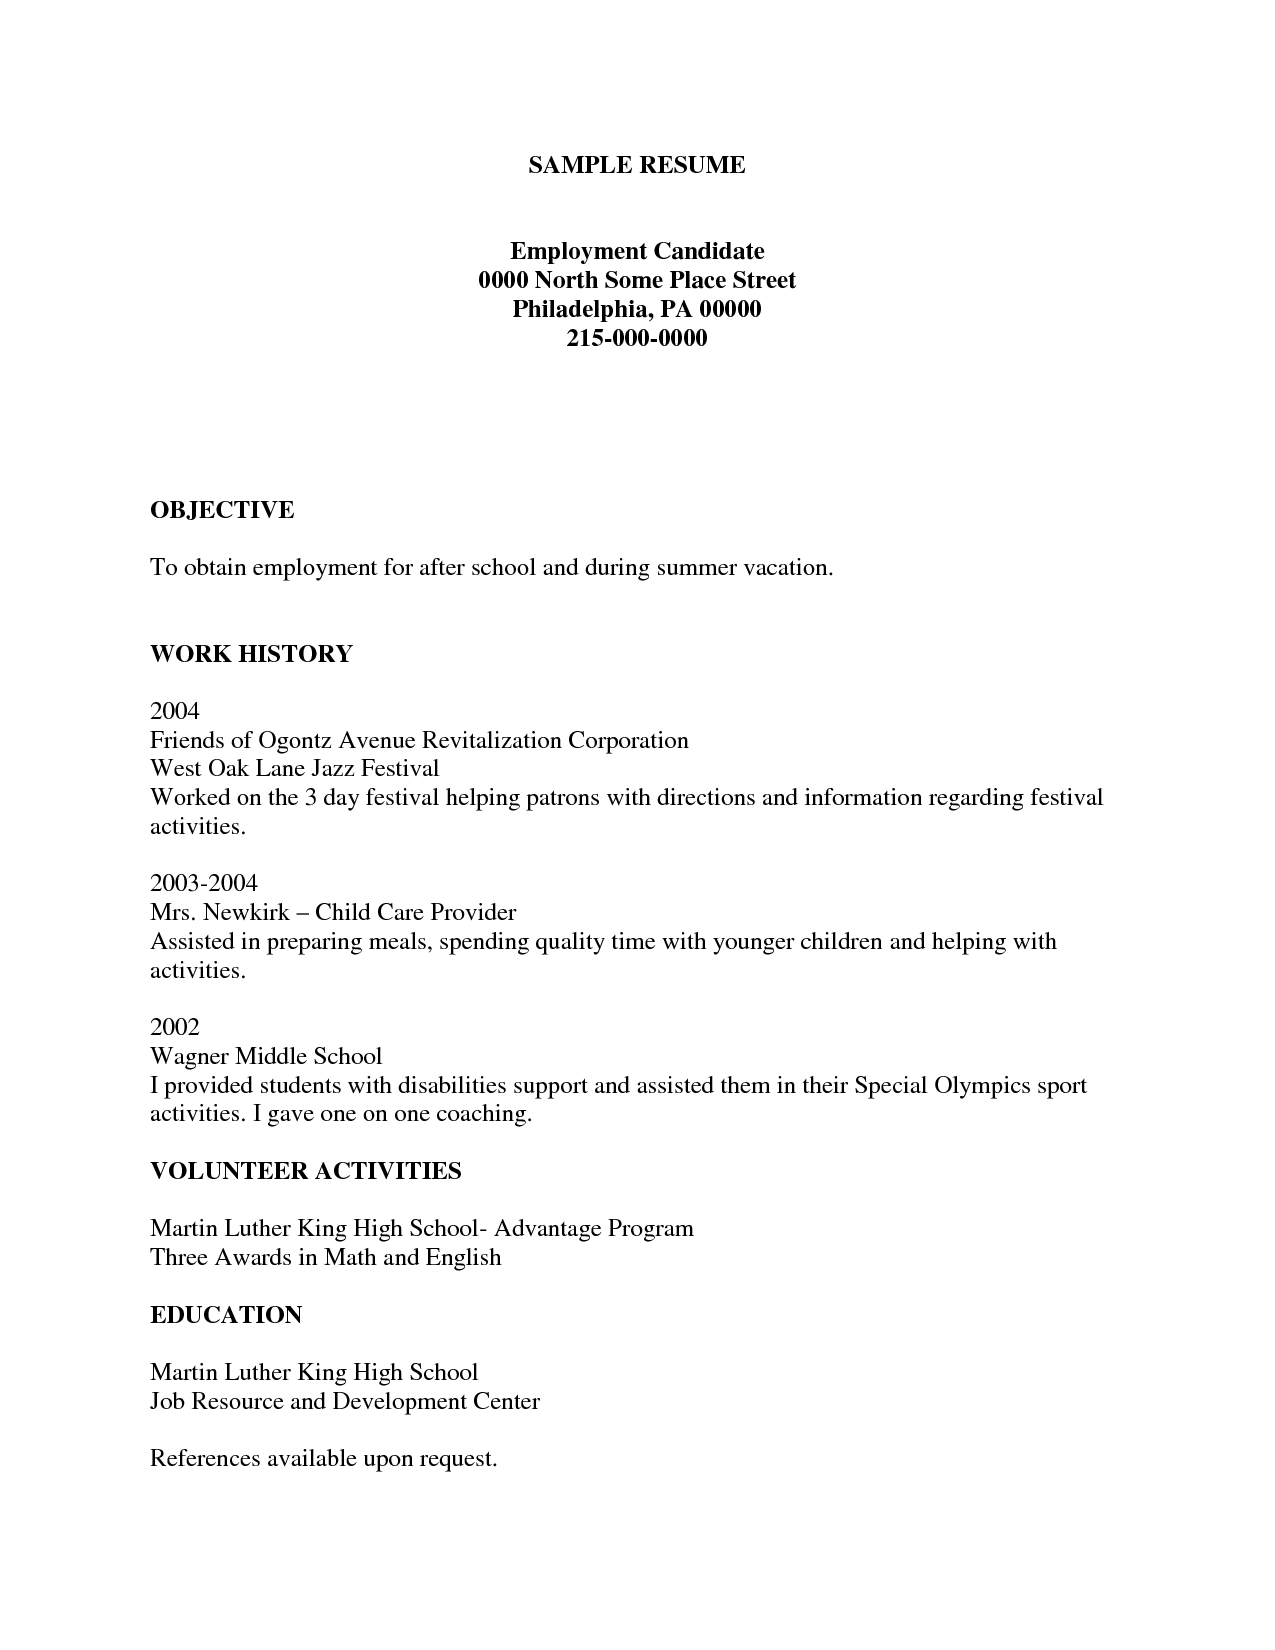 Free Printable Resume Awesome Free Printable Resume Template  Httpwww.resumecareerfree .